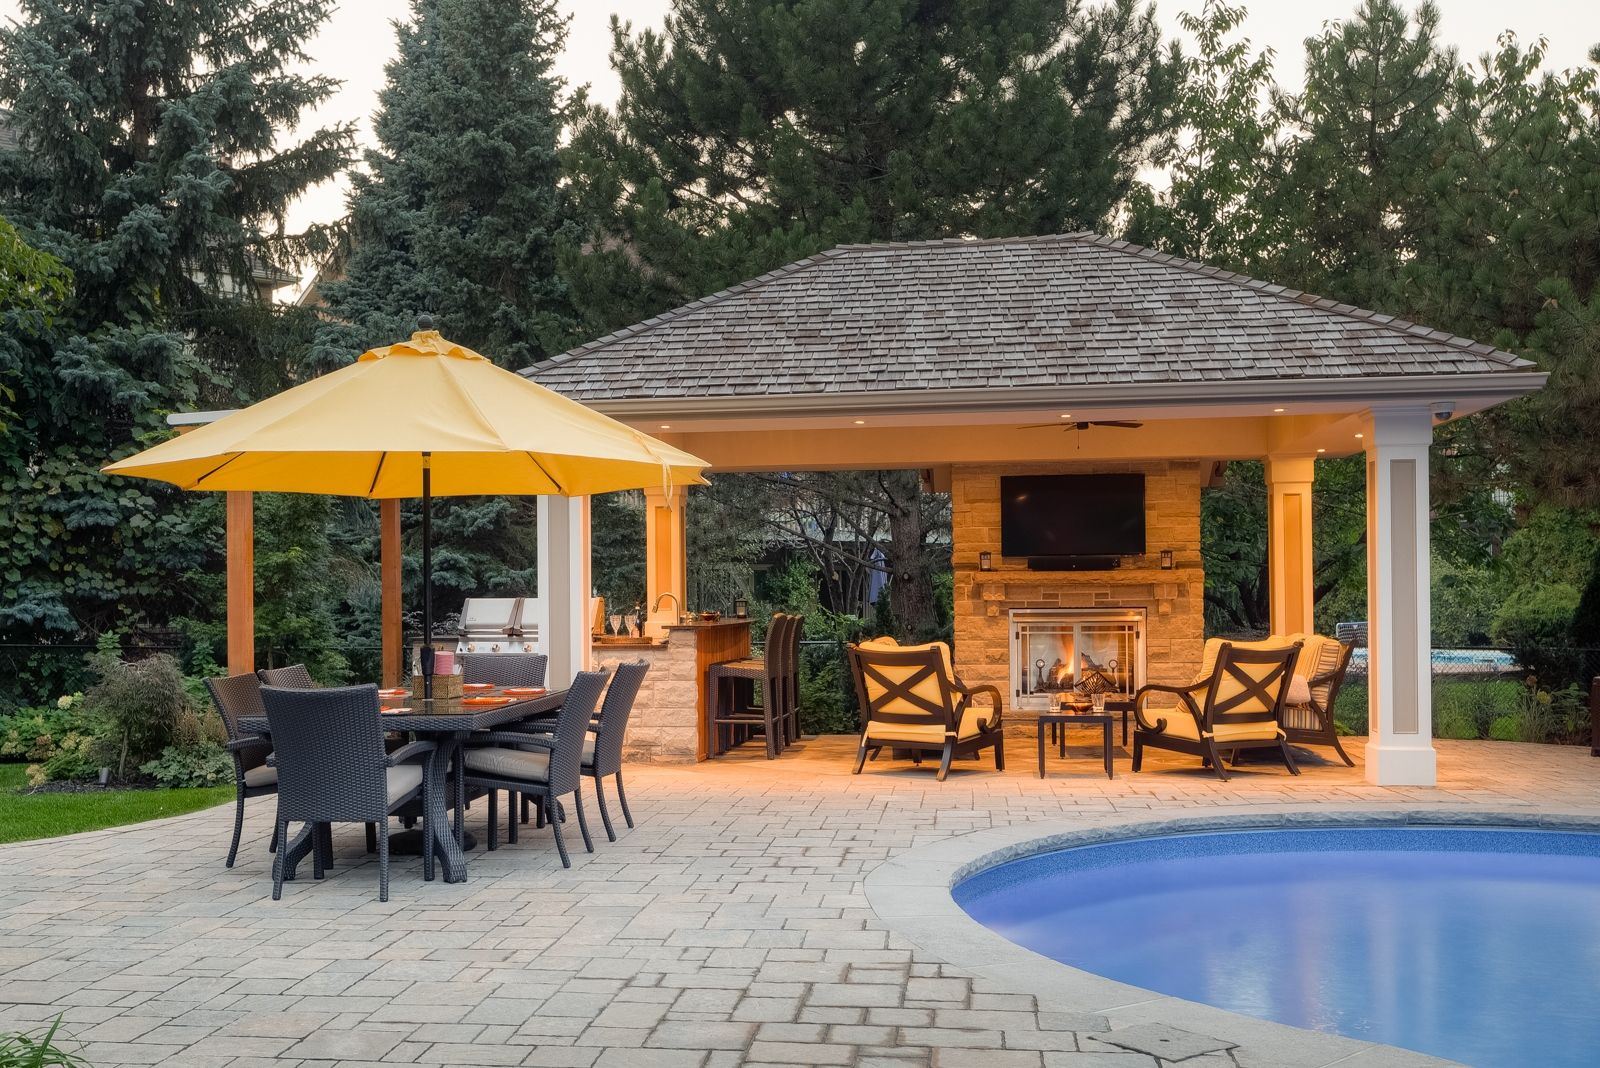 Pool Houses And Cabanas Landscape Design Build Cabanas And Pool pertaining to Backyard Cabana Ideas